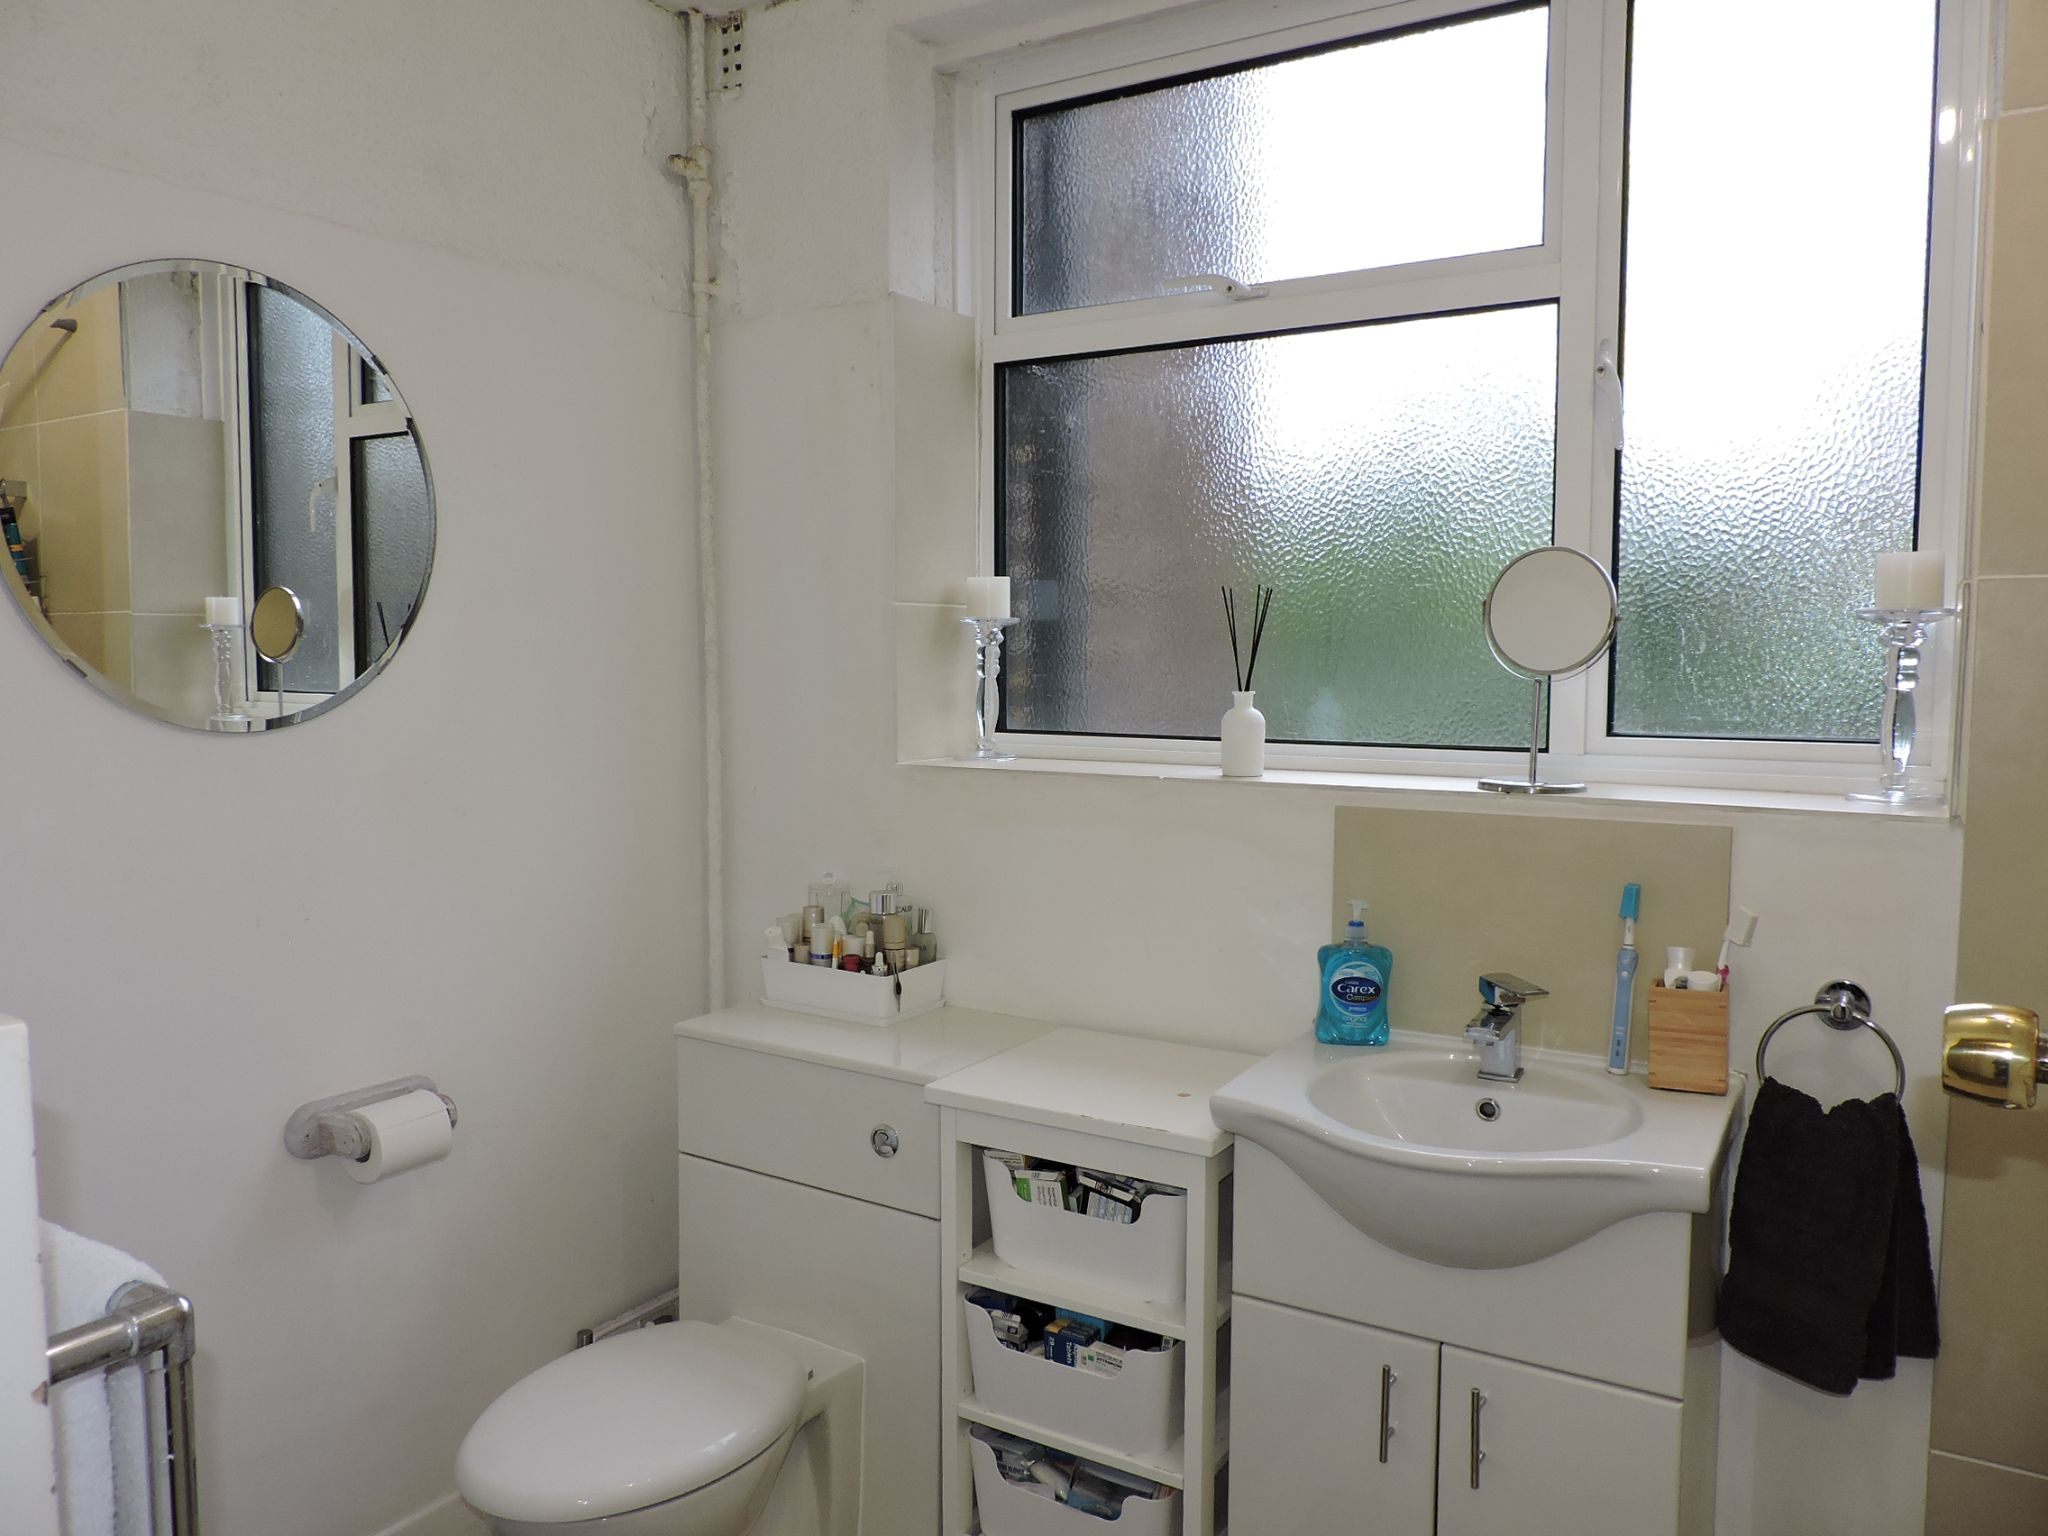 2 bedroom flat flat/apartment For Sale in Surbiton - Photograph 12